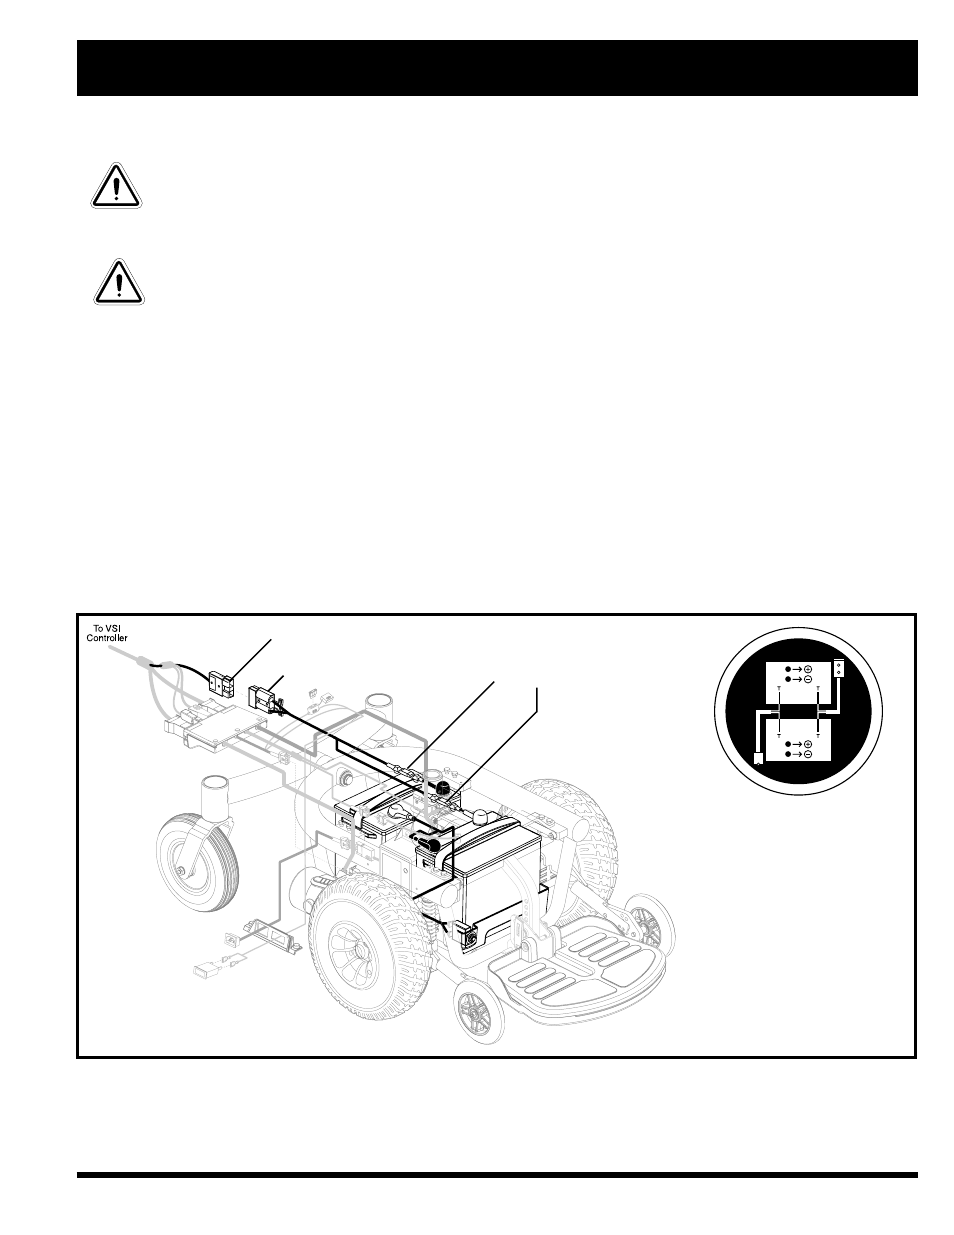 pride mobility jazzy 1103 ultra user manual page 51 55 rh manualsdir com Mini Jazzy 1103 Jazzy 1103 Parts